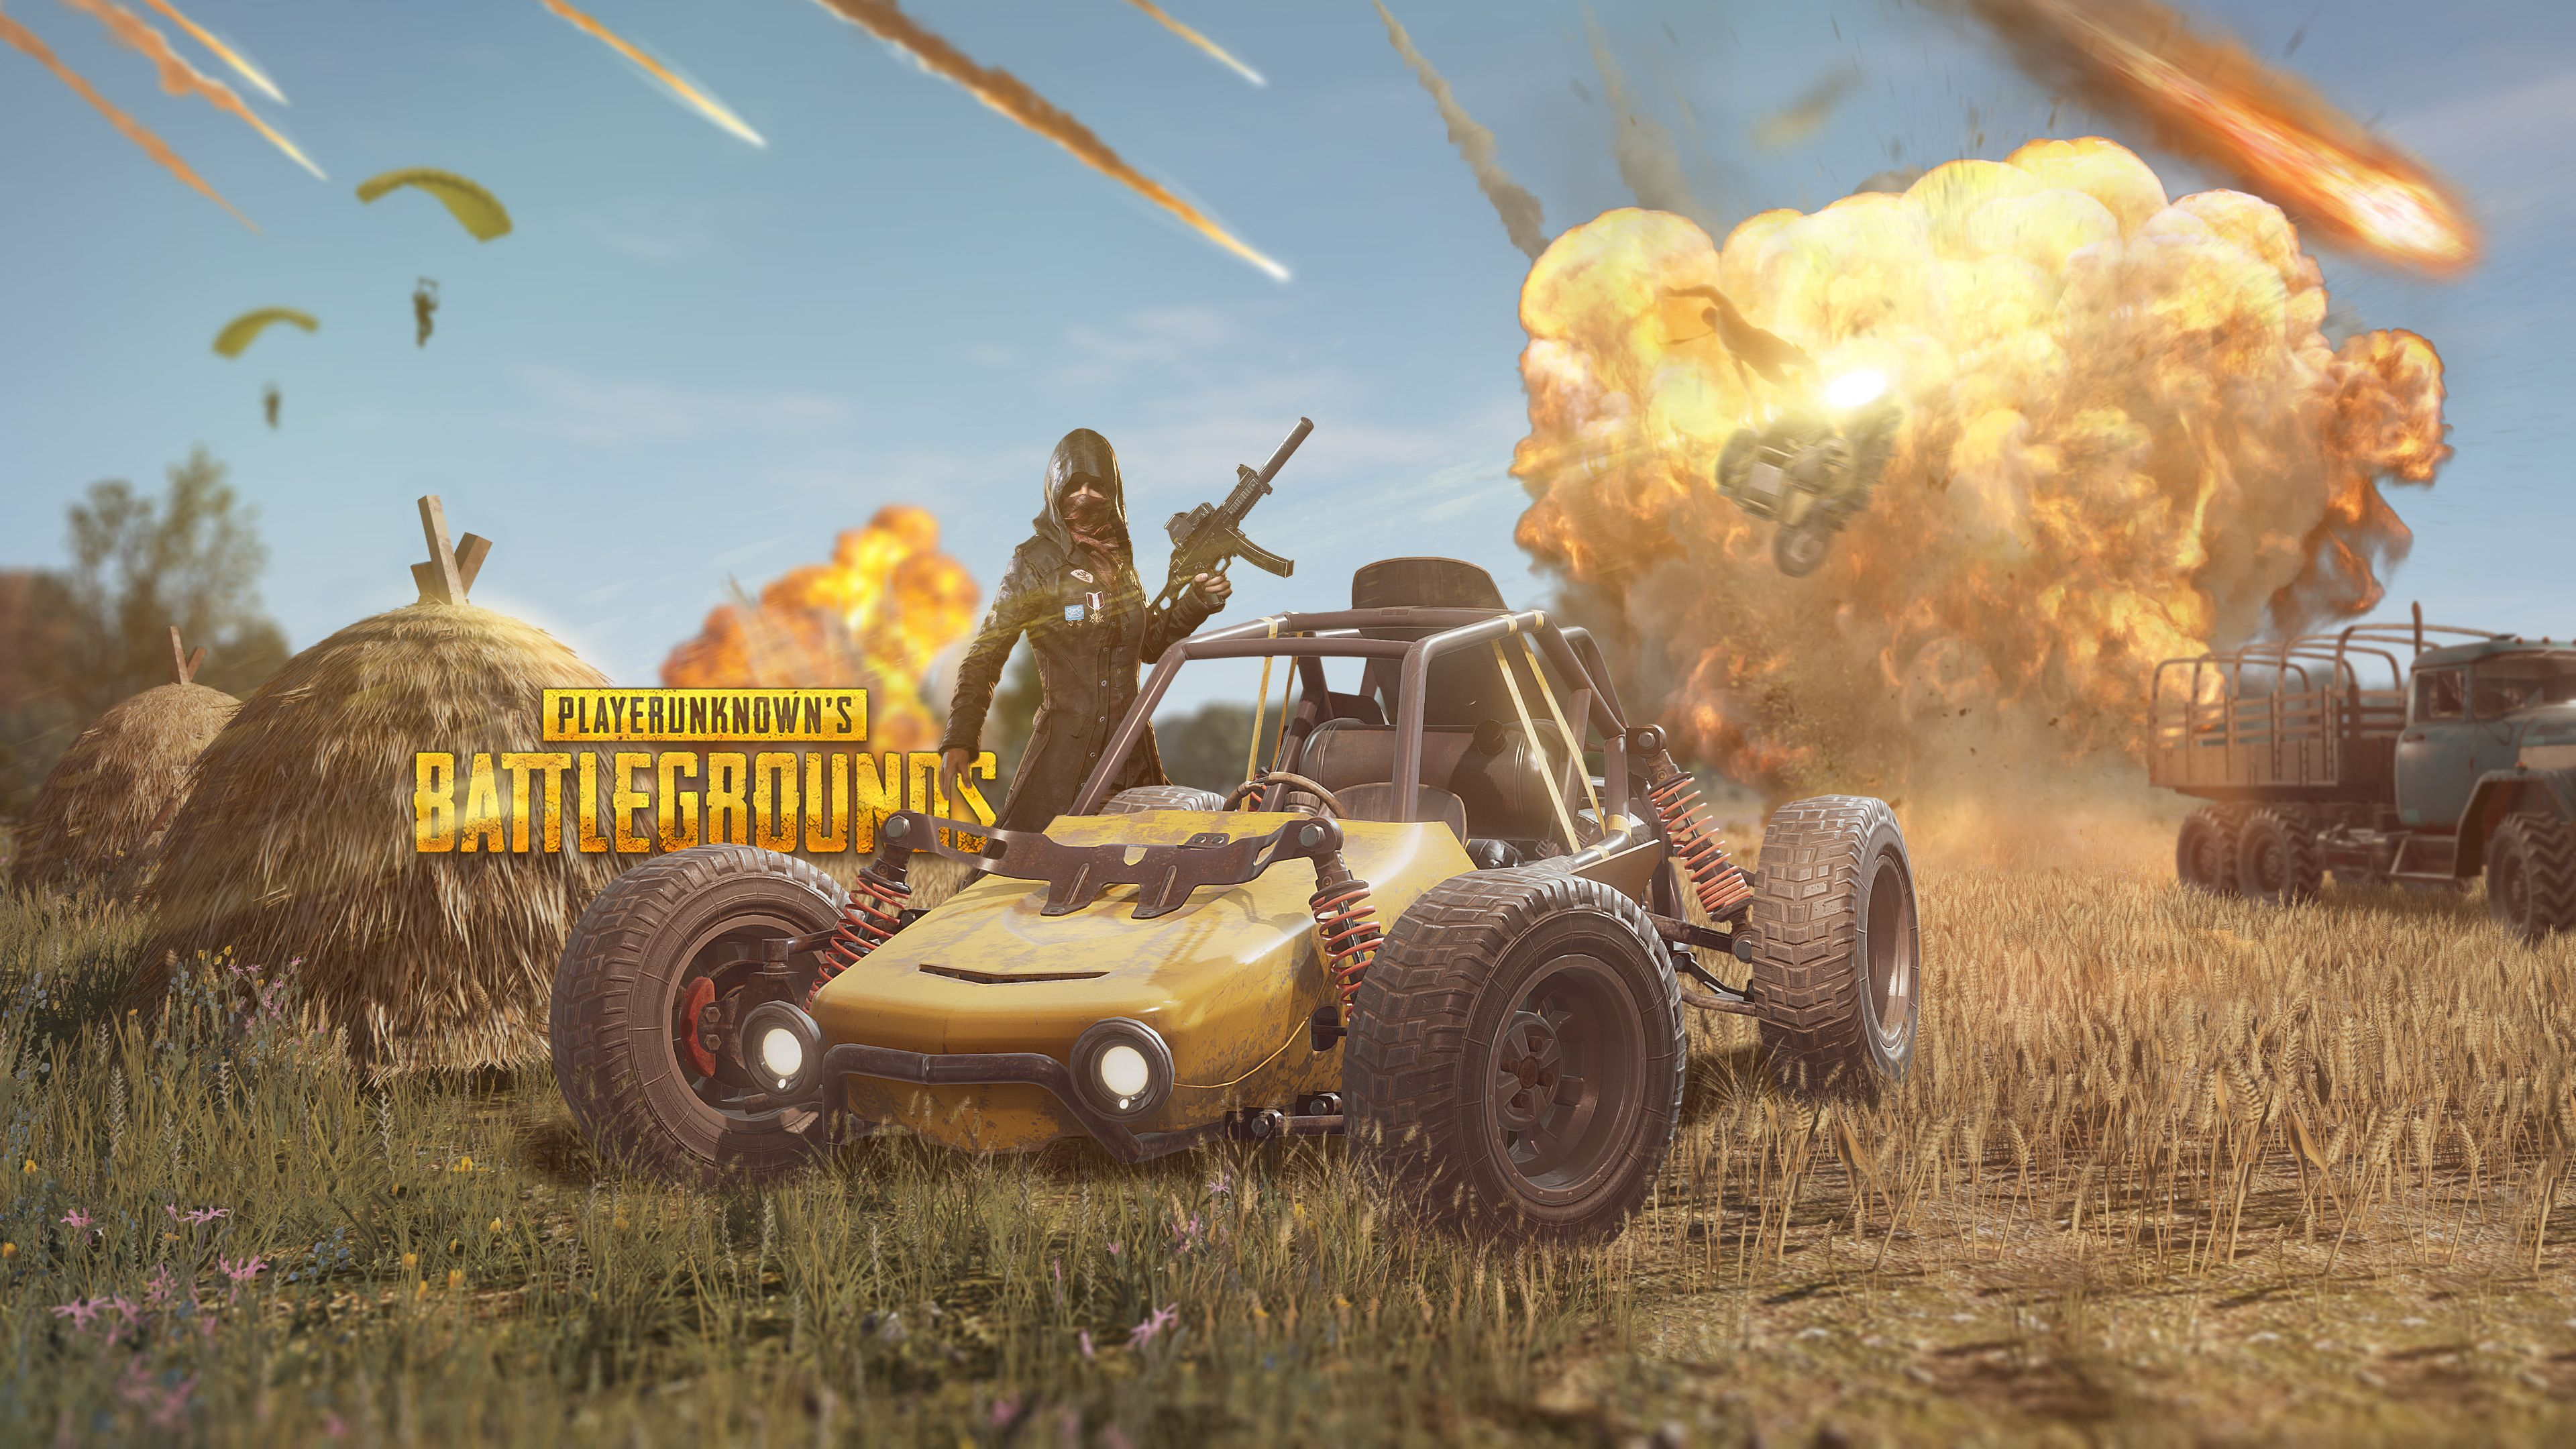 Wallpaper Pubg Mobile Hd Android: Pubg Wallpapers Widescreen On Wallpaper 1080p HD